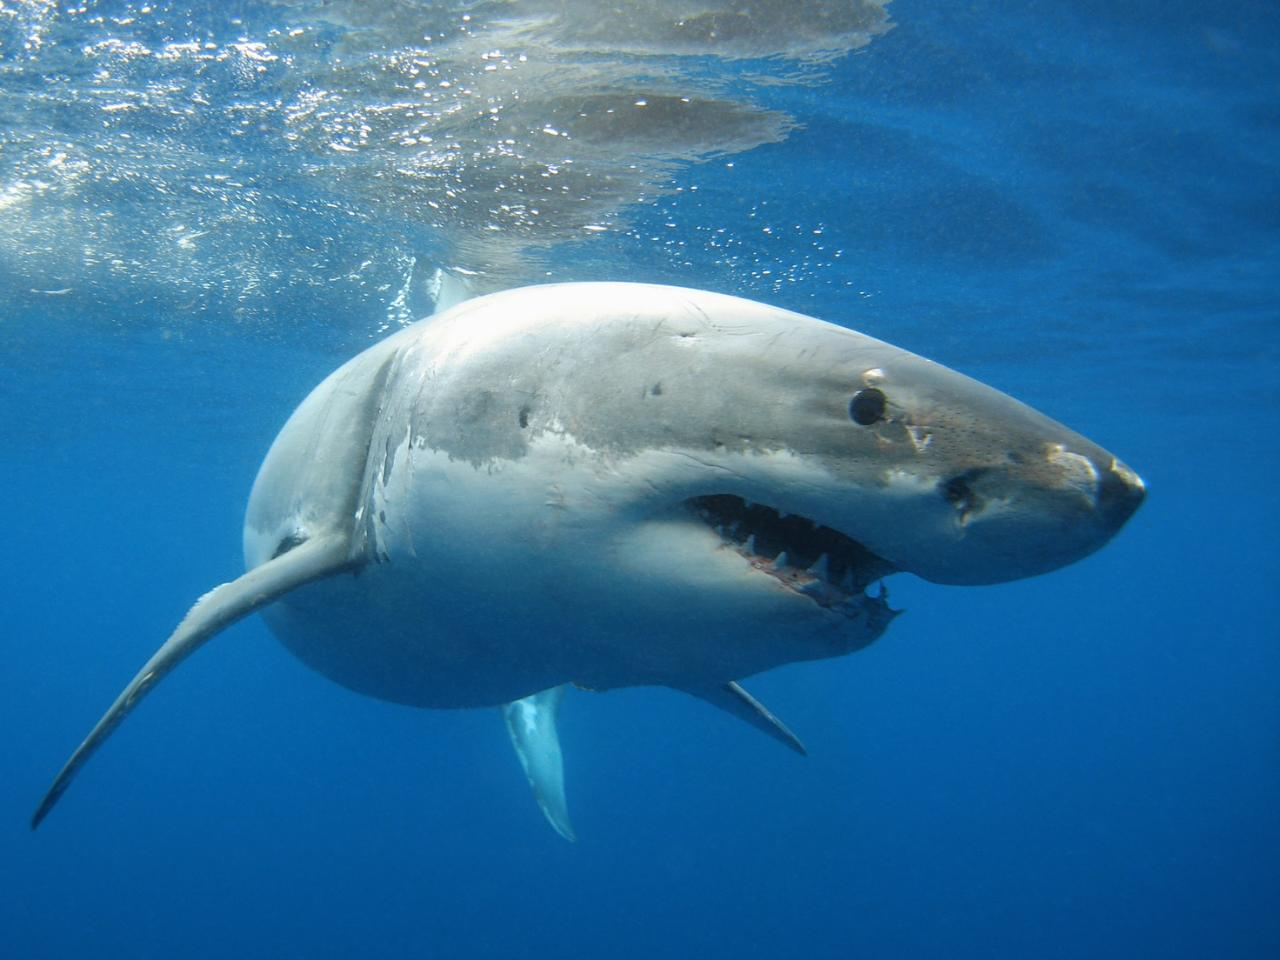 People could soon know if great white sharks are in the area, by testing the water for their cast-off DNA